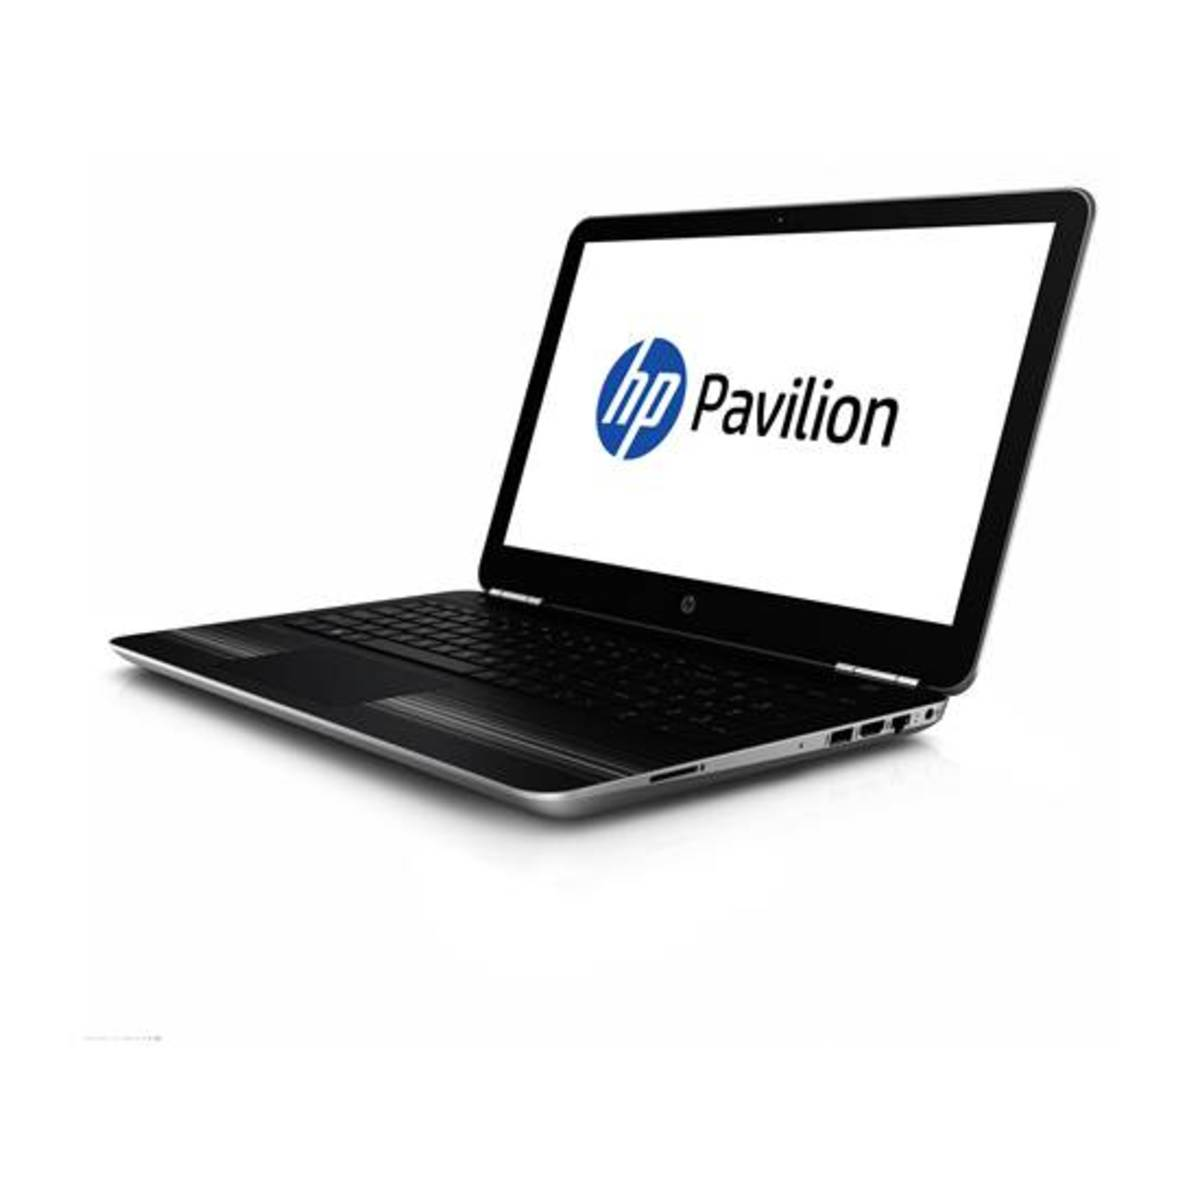 Review: HP Pavilion 15-au010wm Laptop